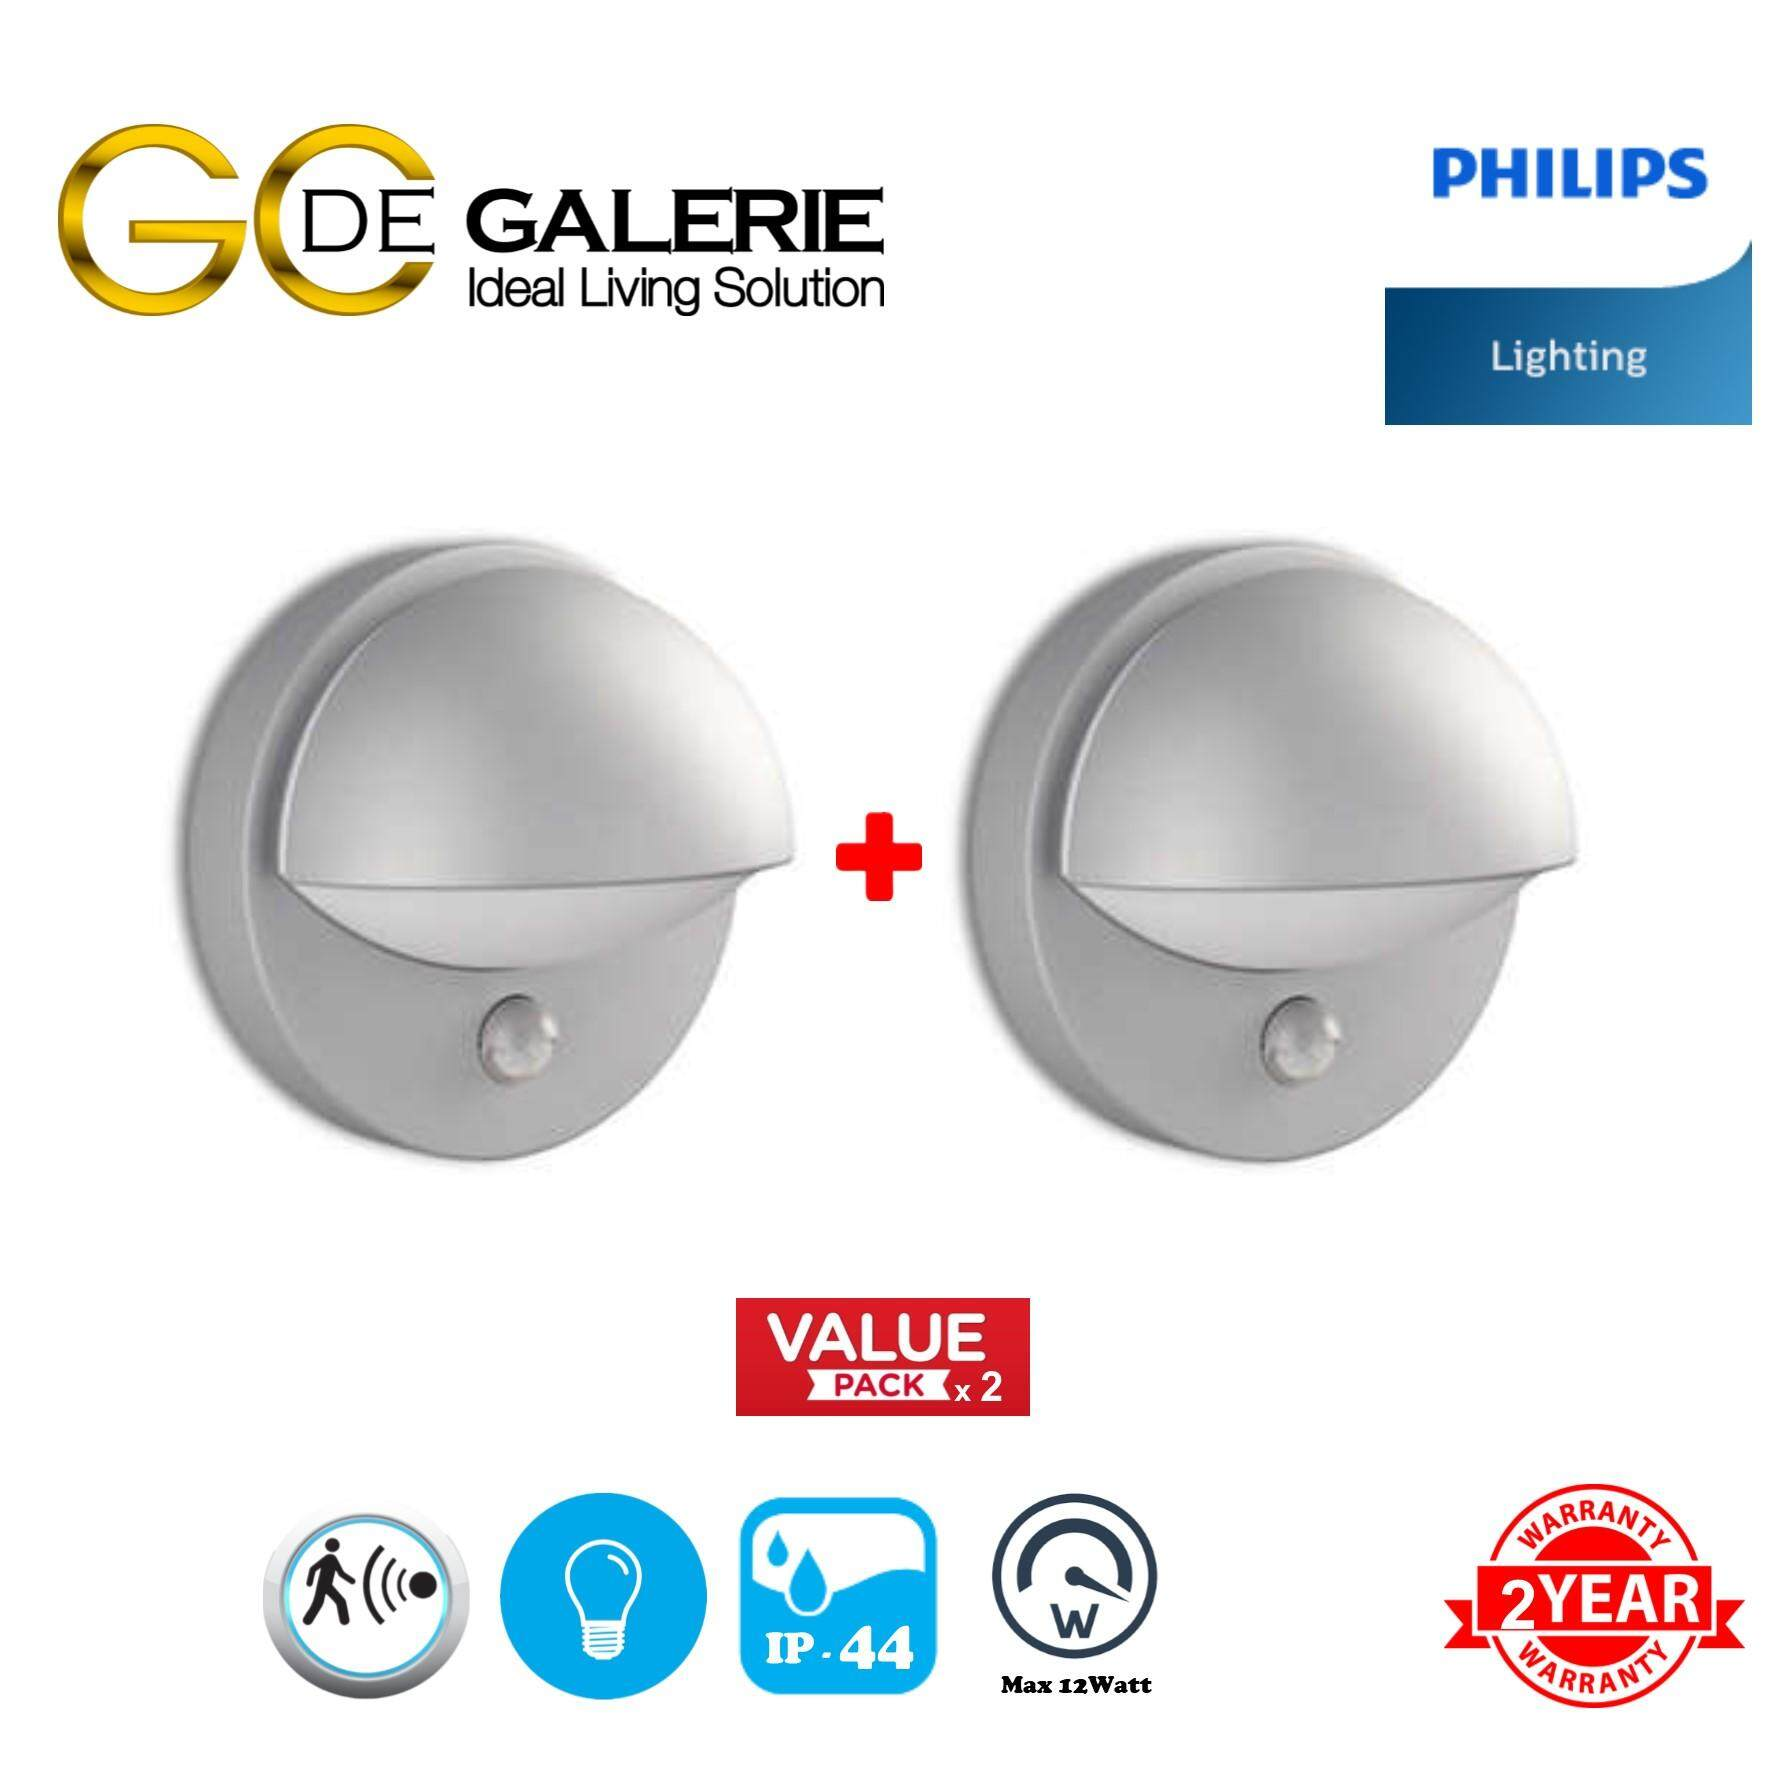 WALL LIGHT PHILIPS 16246 GREY 1x12W (2 PACK)